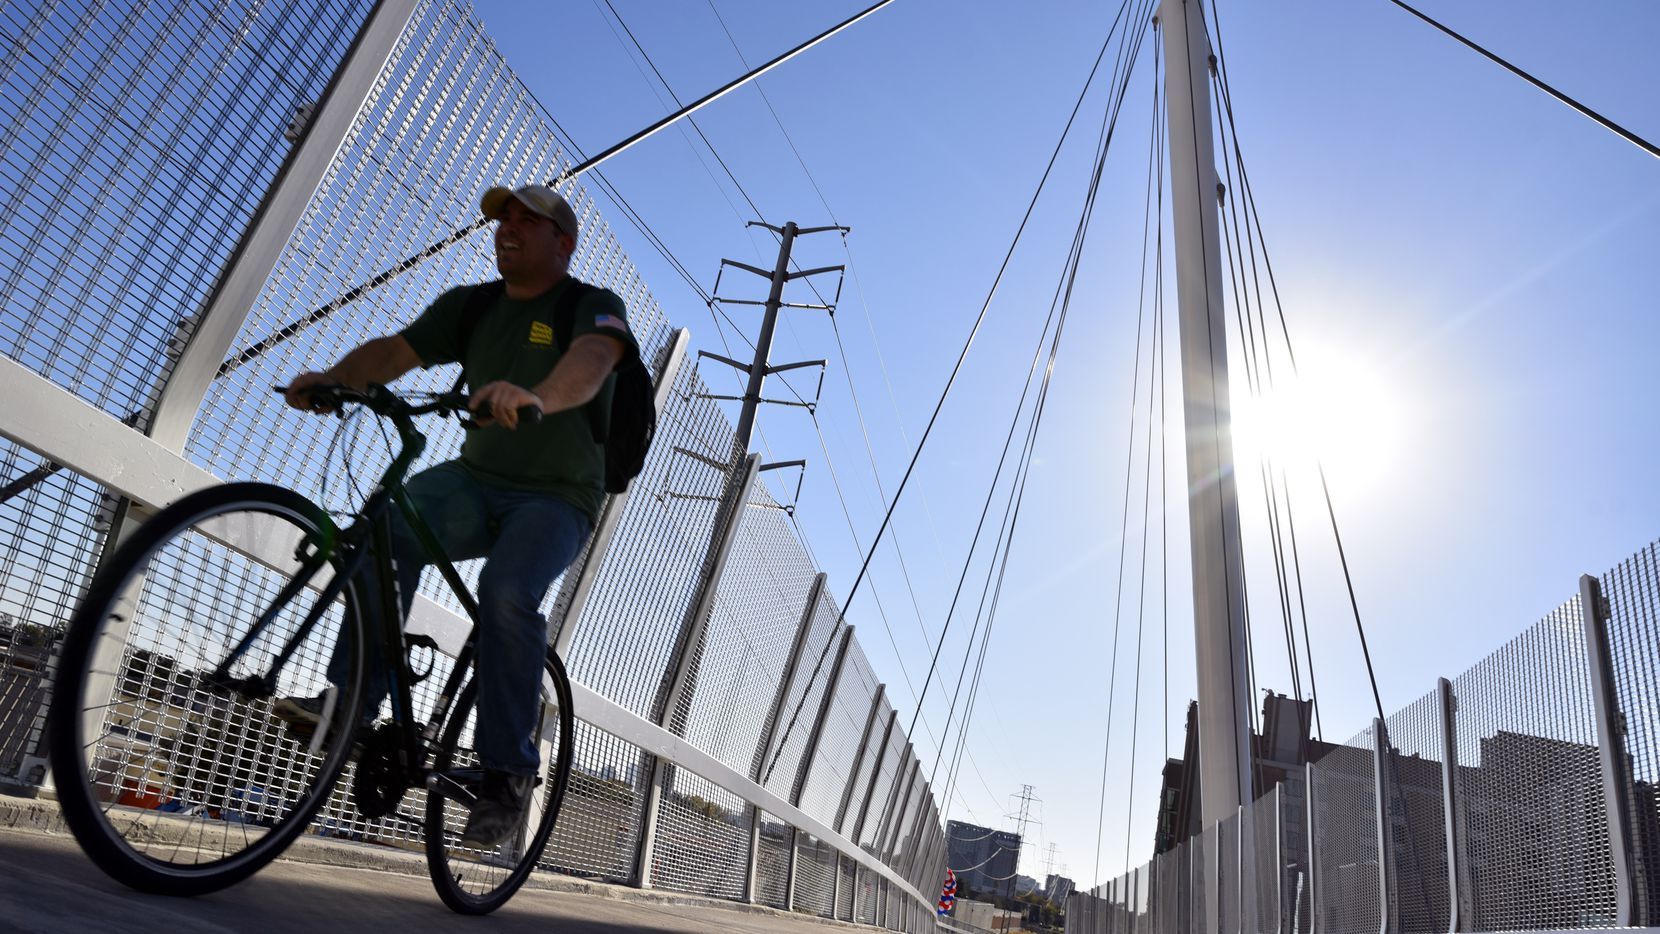 A man rides a bicycle on the new Mockingbird pedestrian bridge over Mockingbird Lane in Dallas, Thursday afternoon, Nov. 02, 2017. The 90-degree record was reached at 2 p.m. Thursday at DFW International Airport, but it kept getting warmer and topped out at 94 just after 4 p.m.